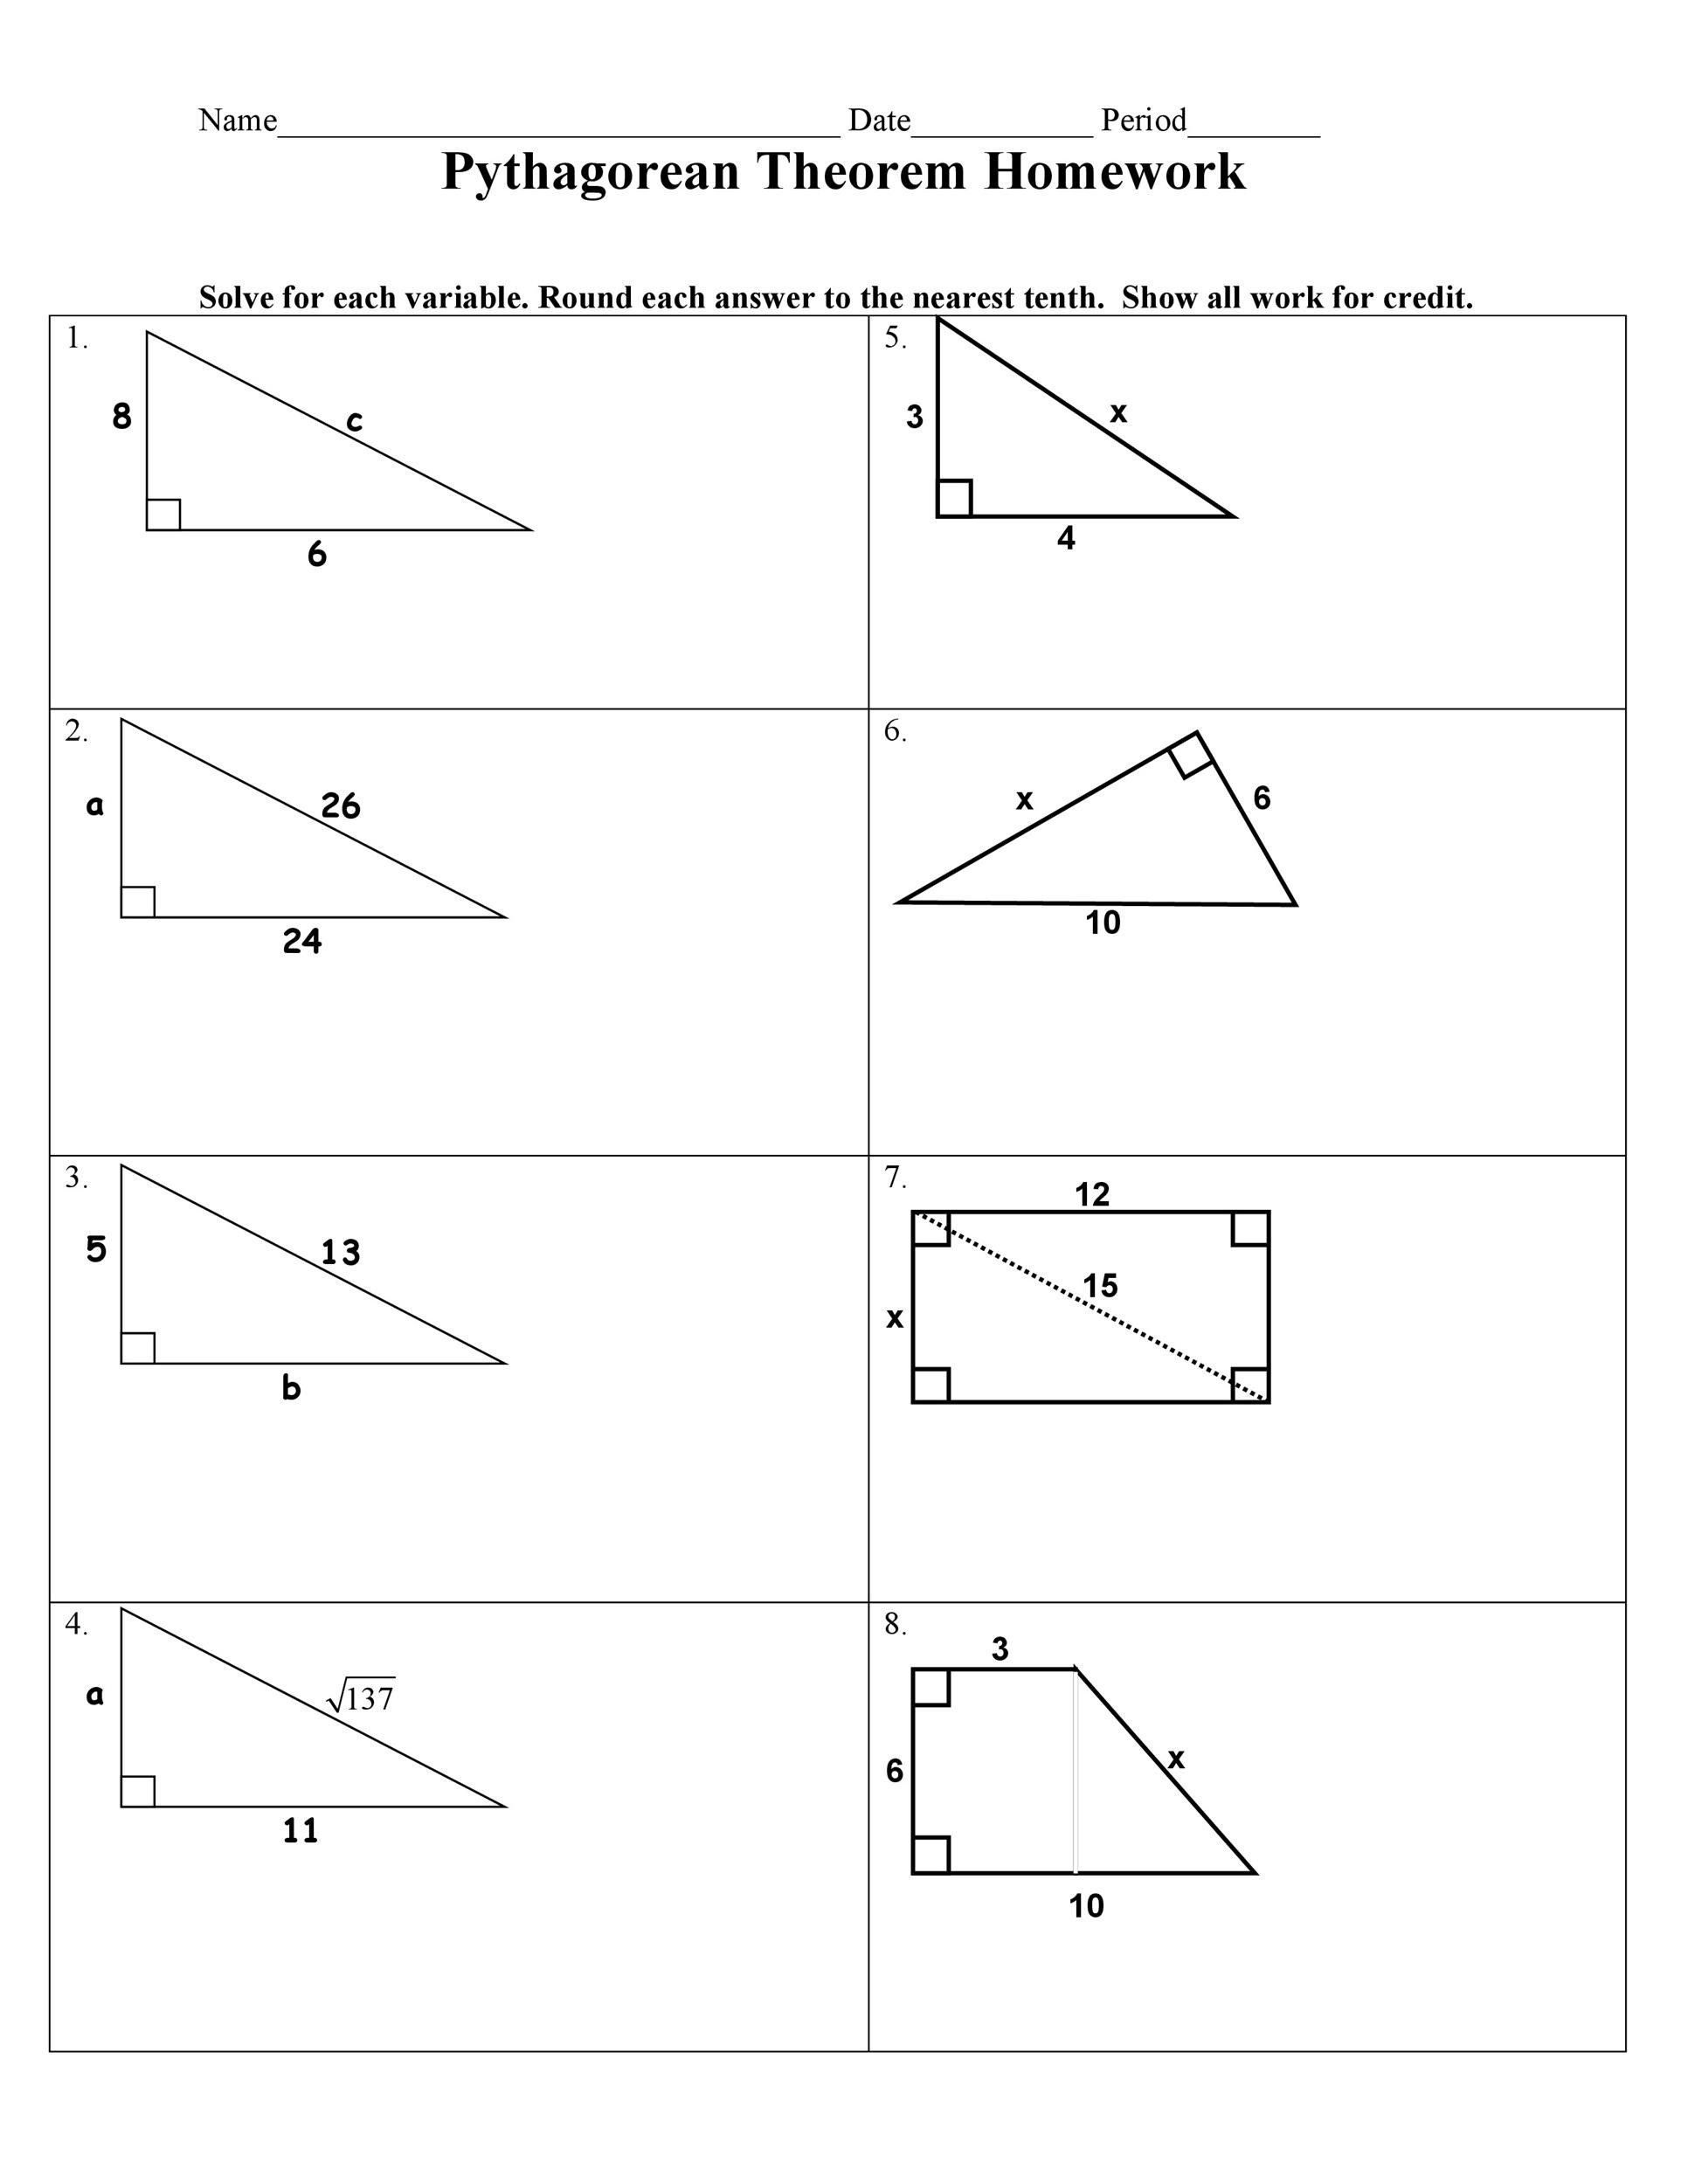 Pythagorean Theorem Worksheet With Answers 48 Pythagorean Theorem Worksheet With Answers Word Pdf